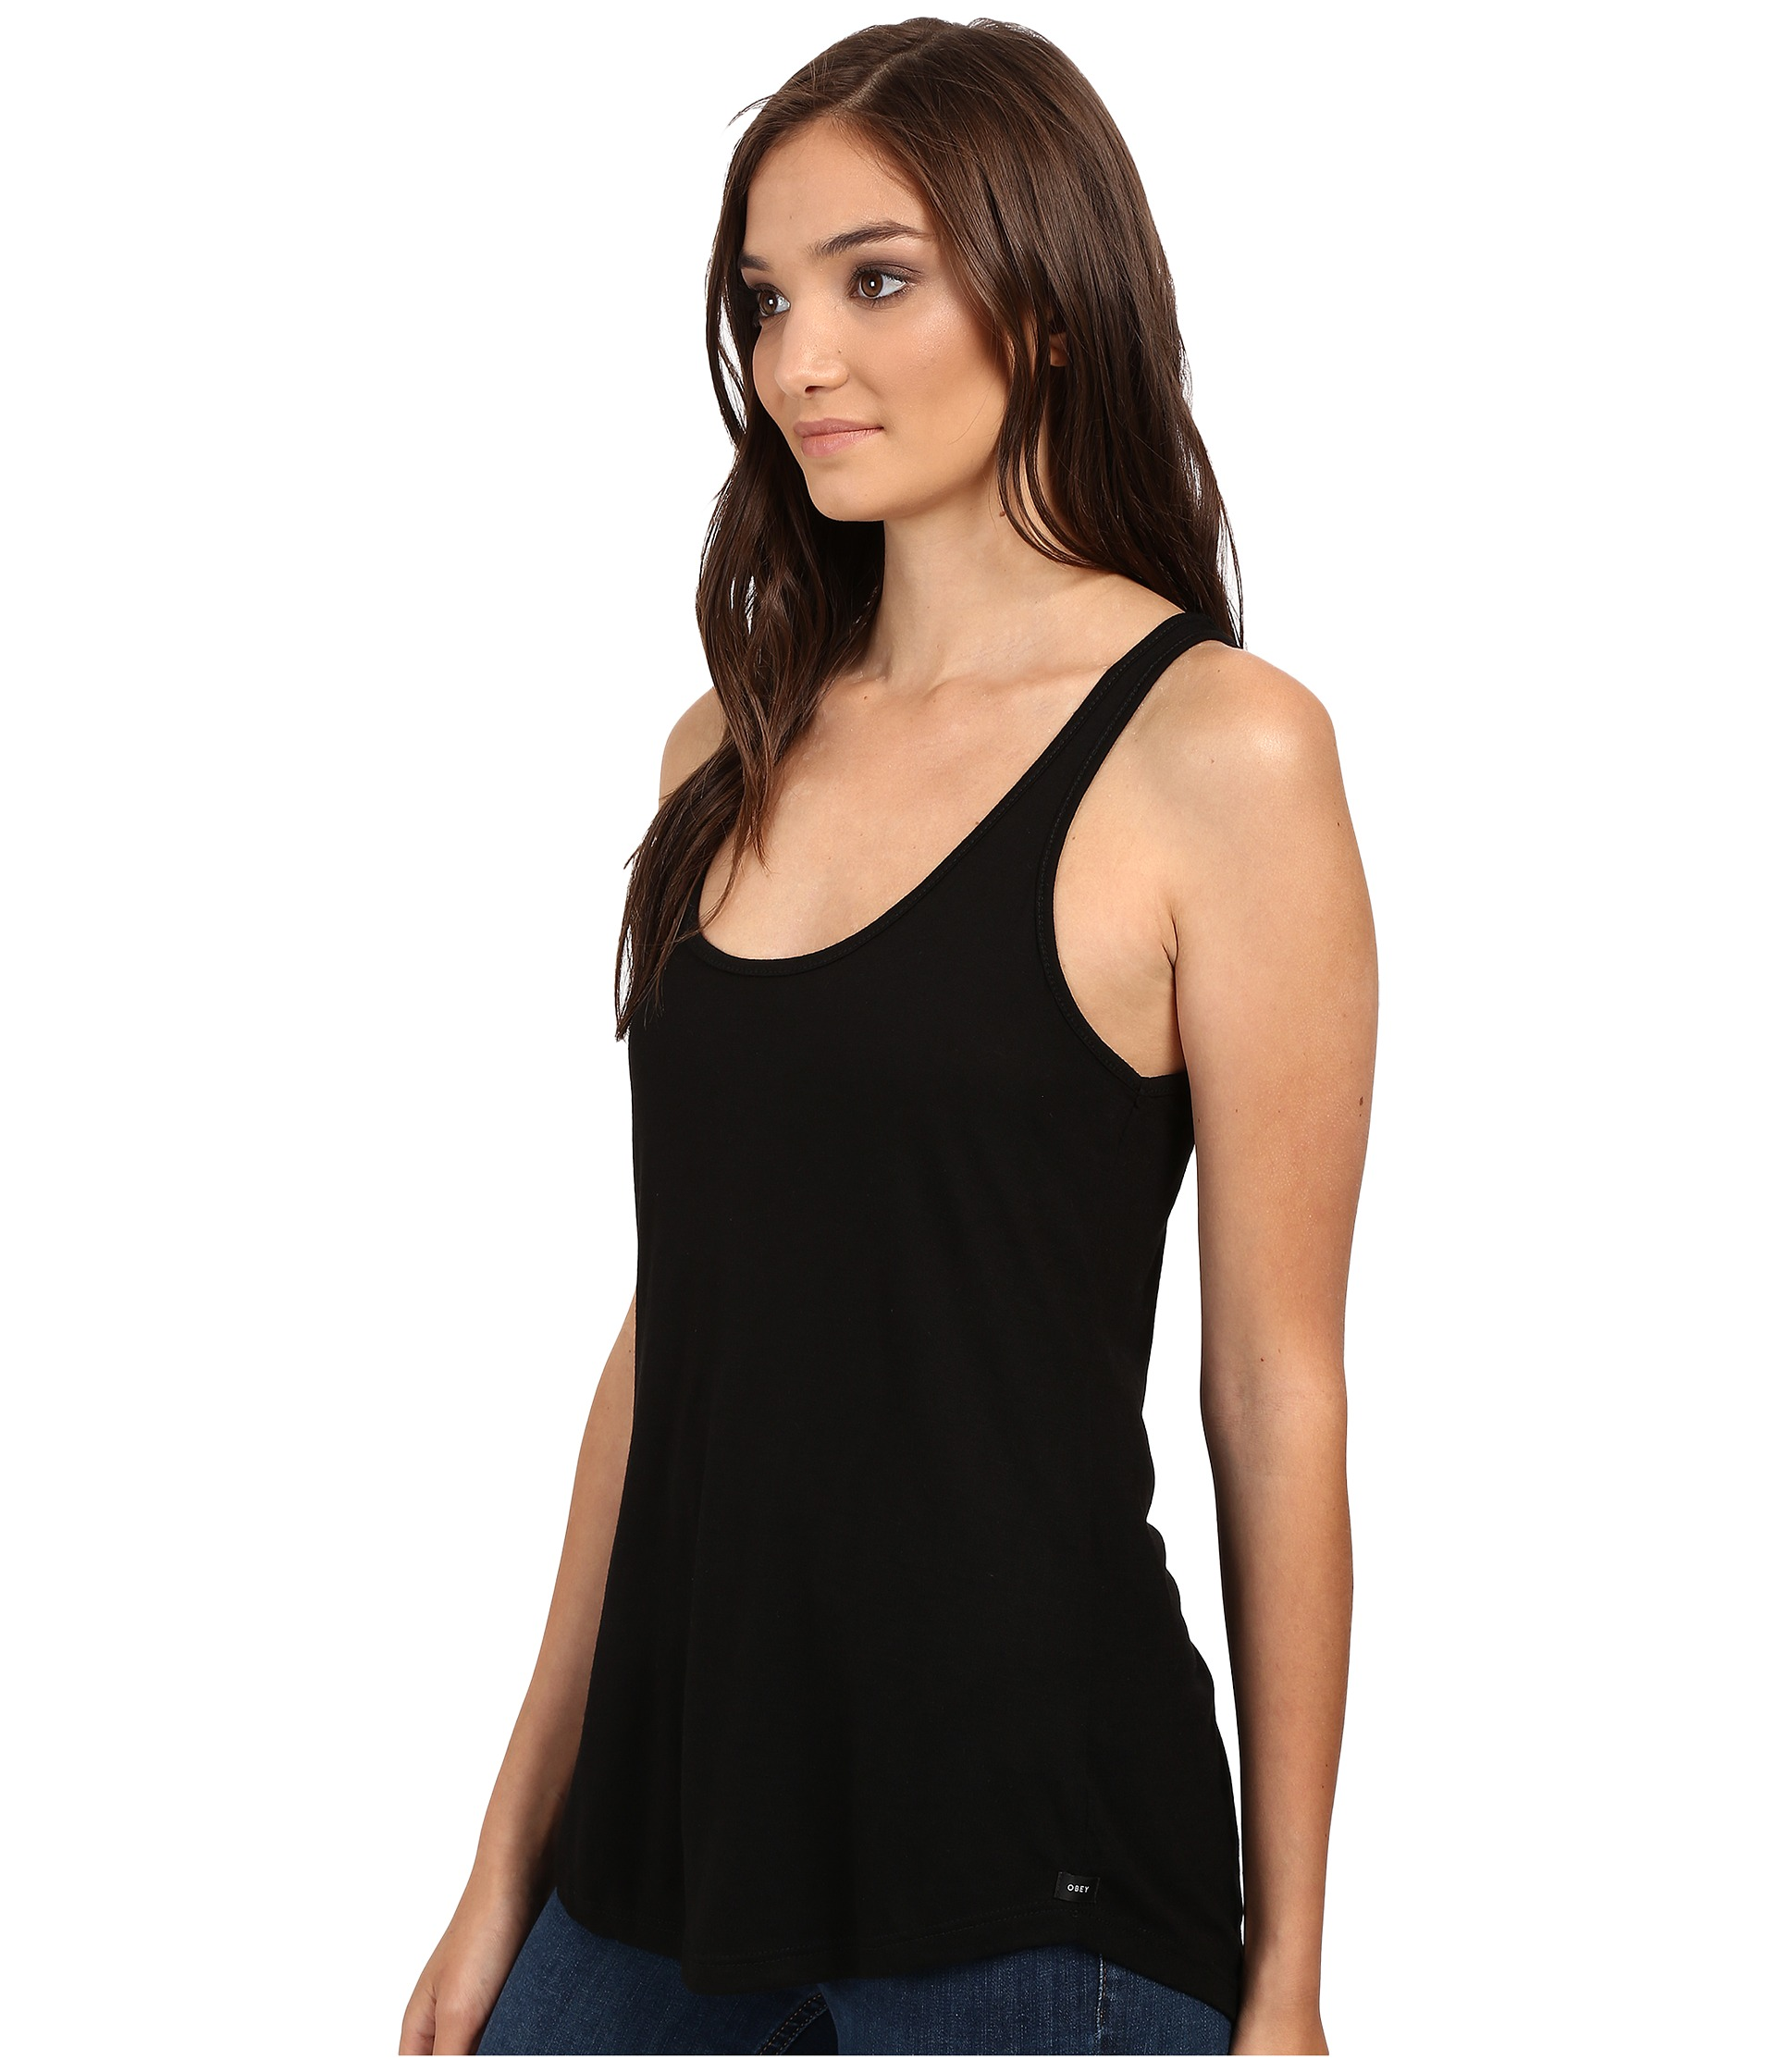 obey off duty tank top black free shipping. Black Bedroom Furniture Sets. Home Design Ideas